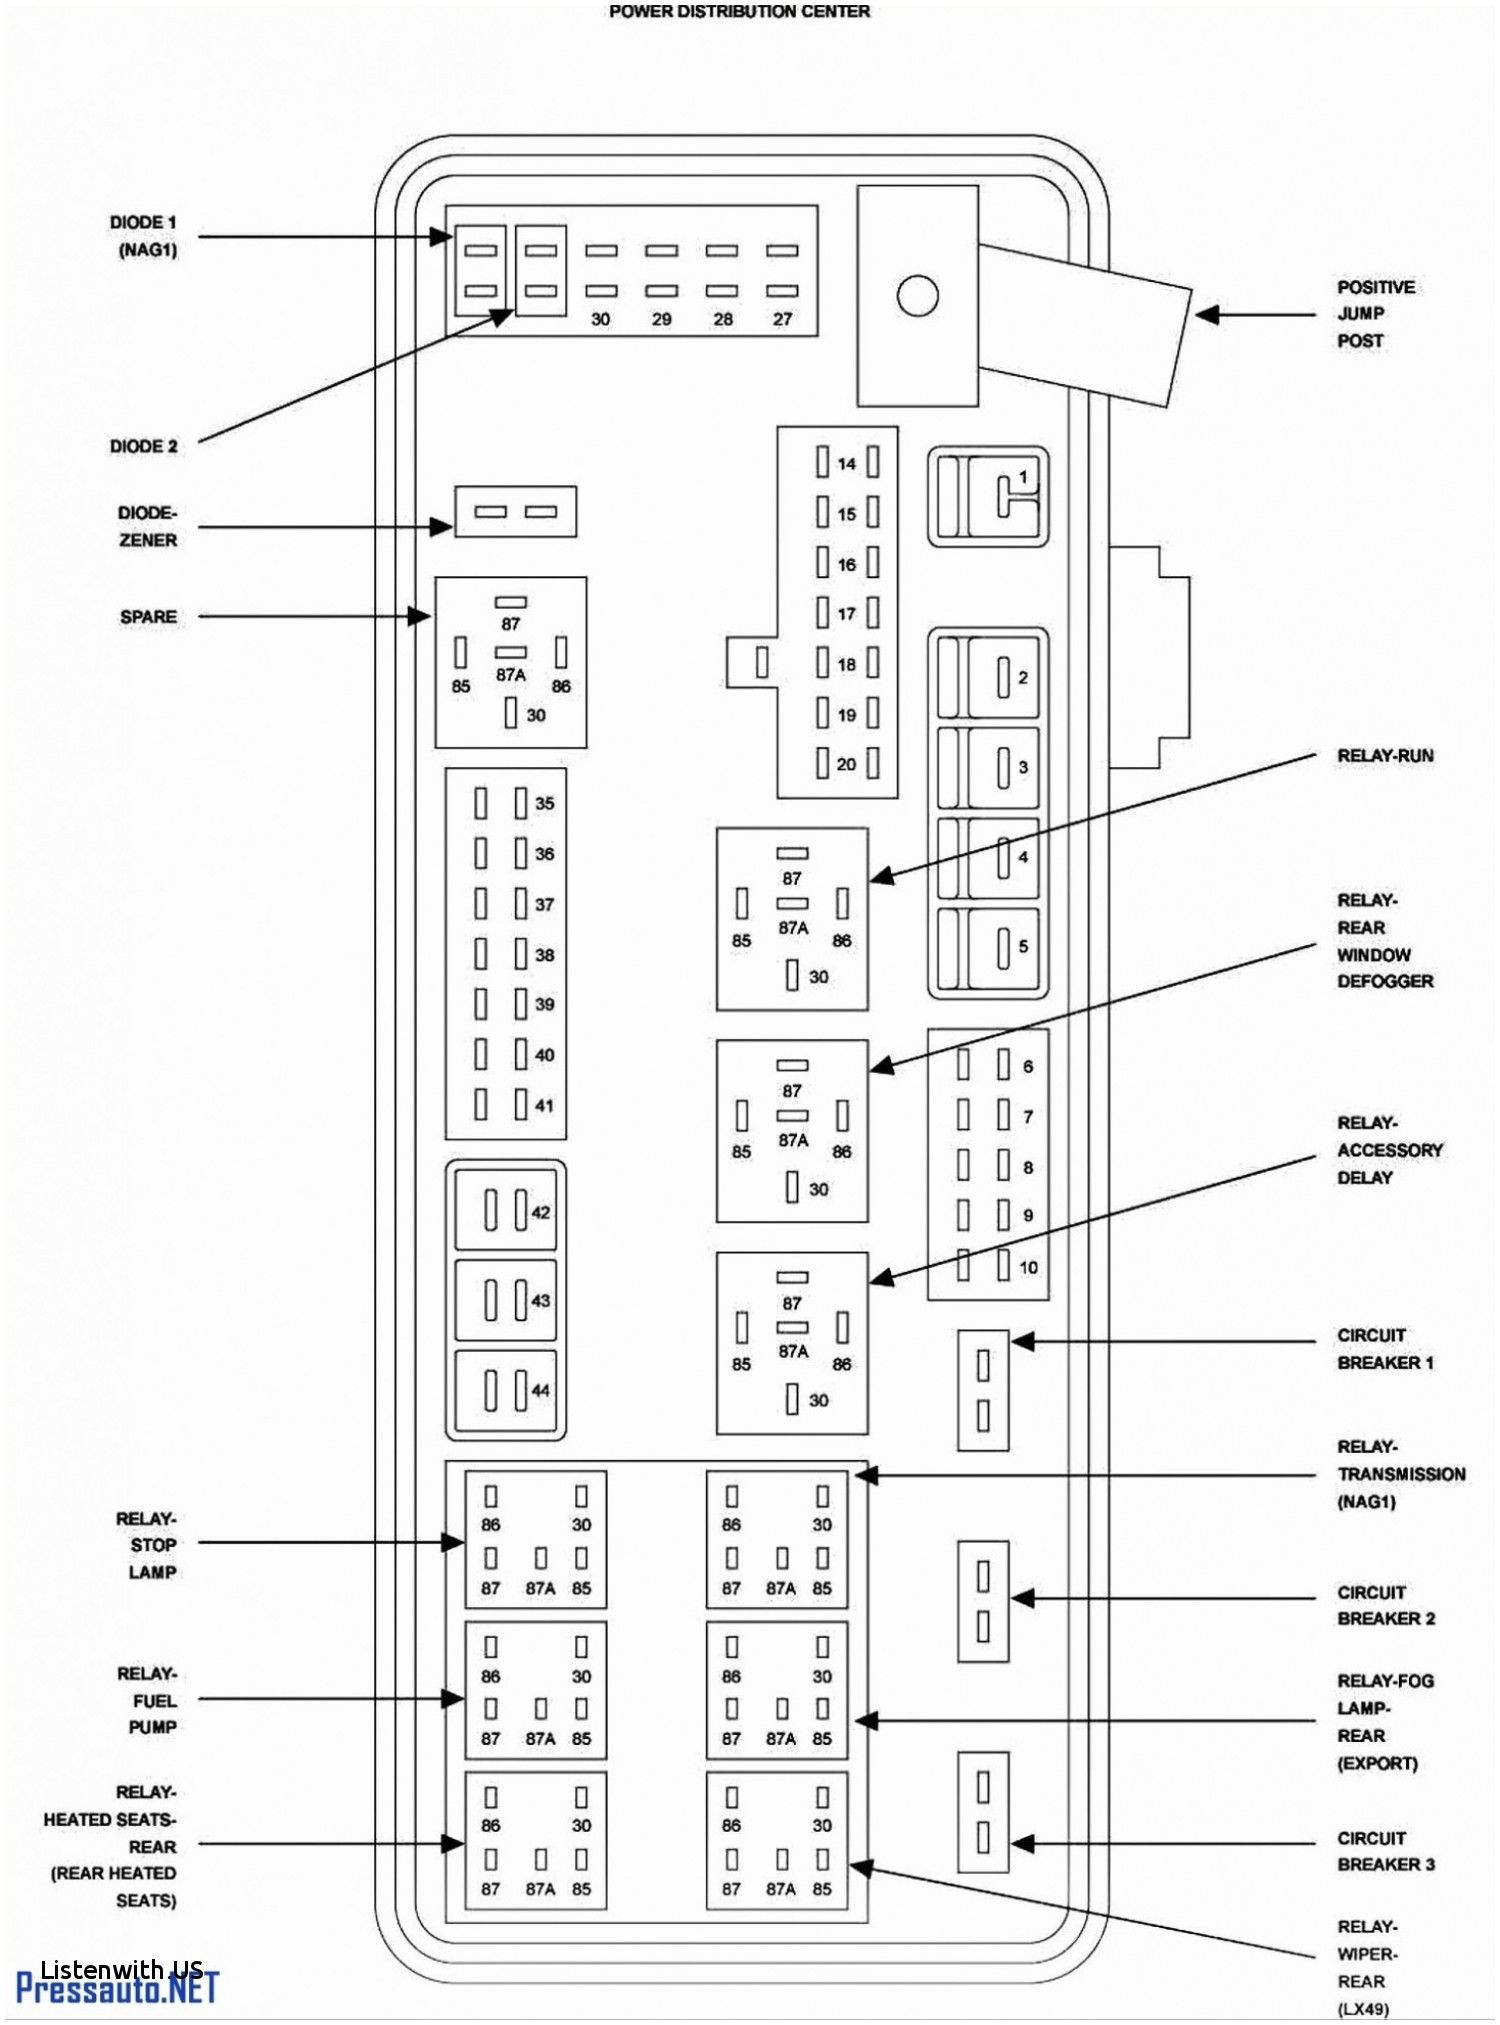 New Wiring Diagram Bose Amp Diagramsample Diagramformats